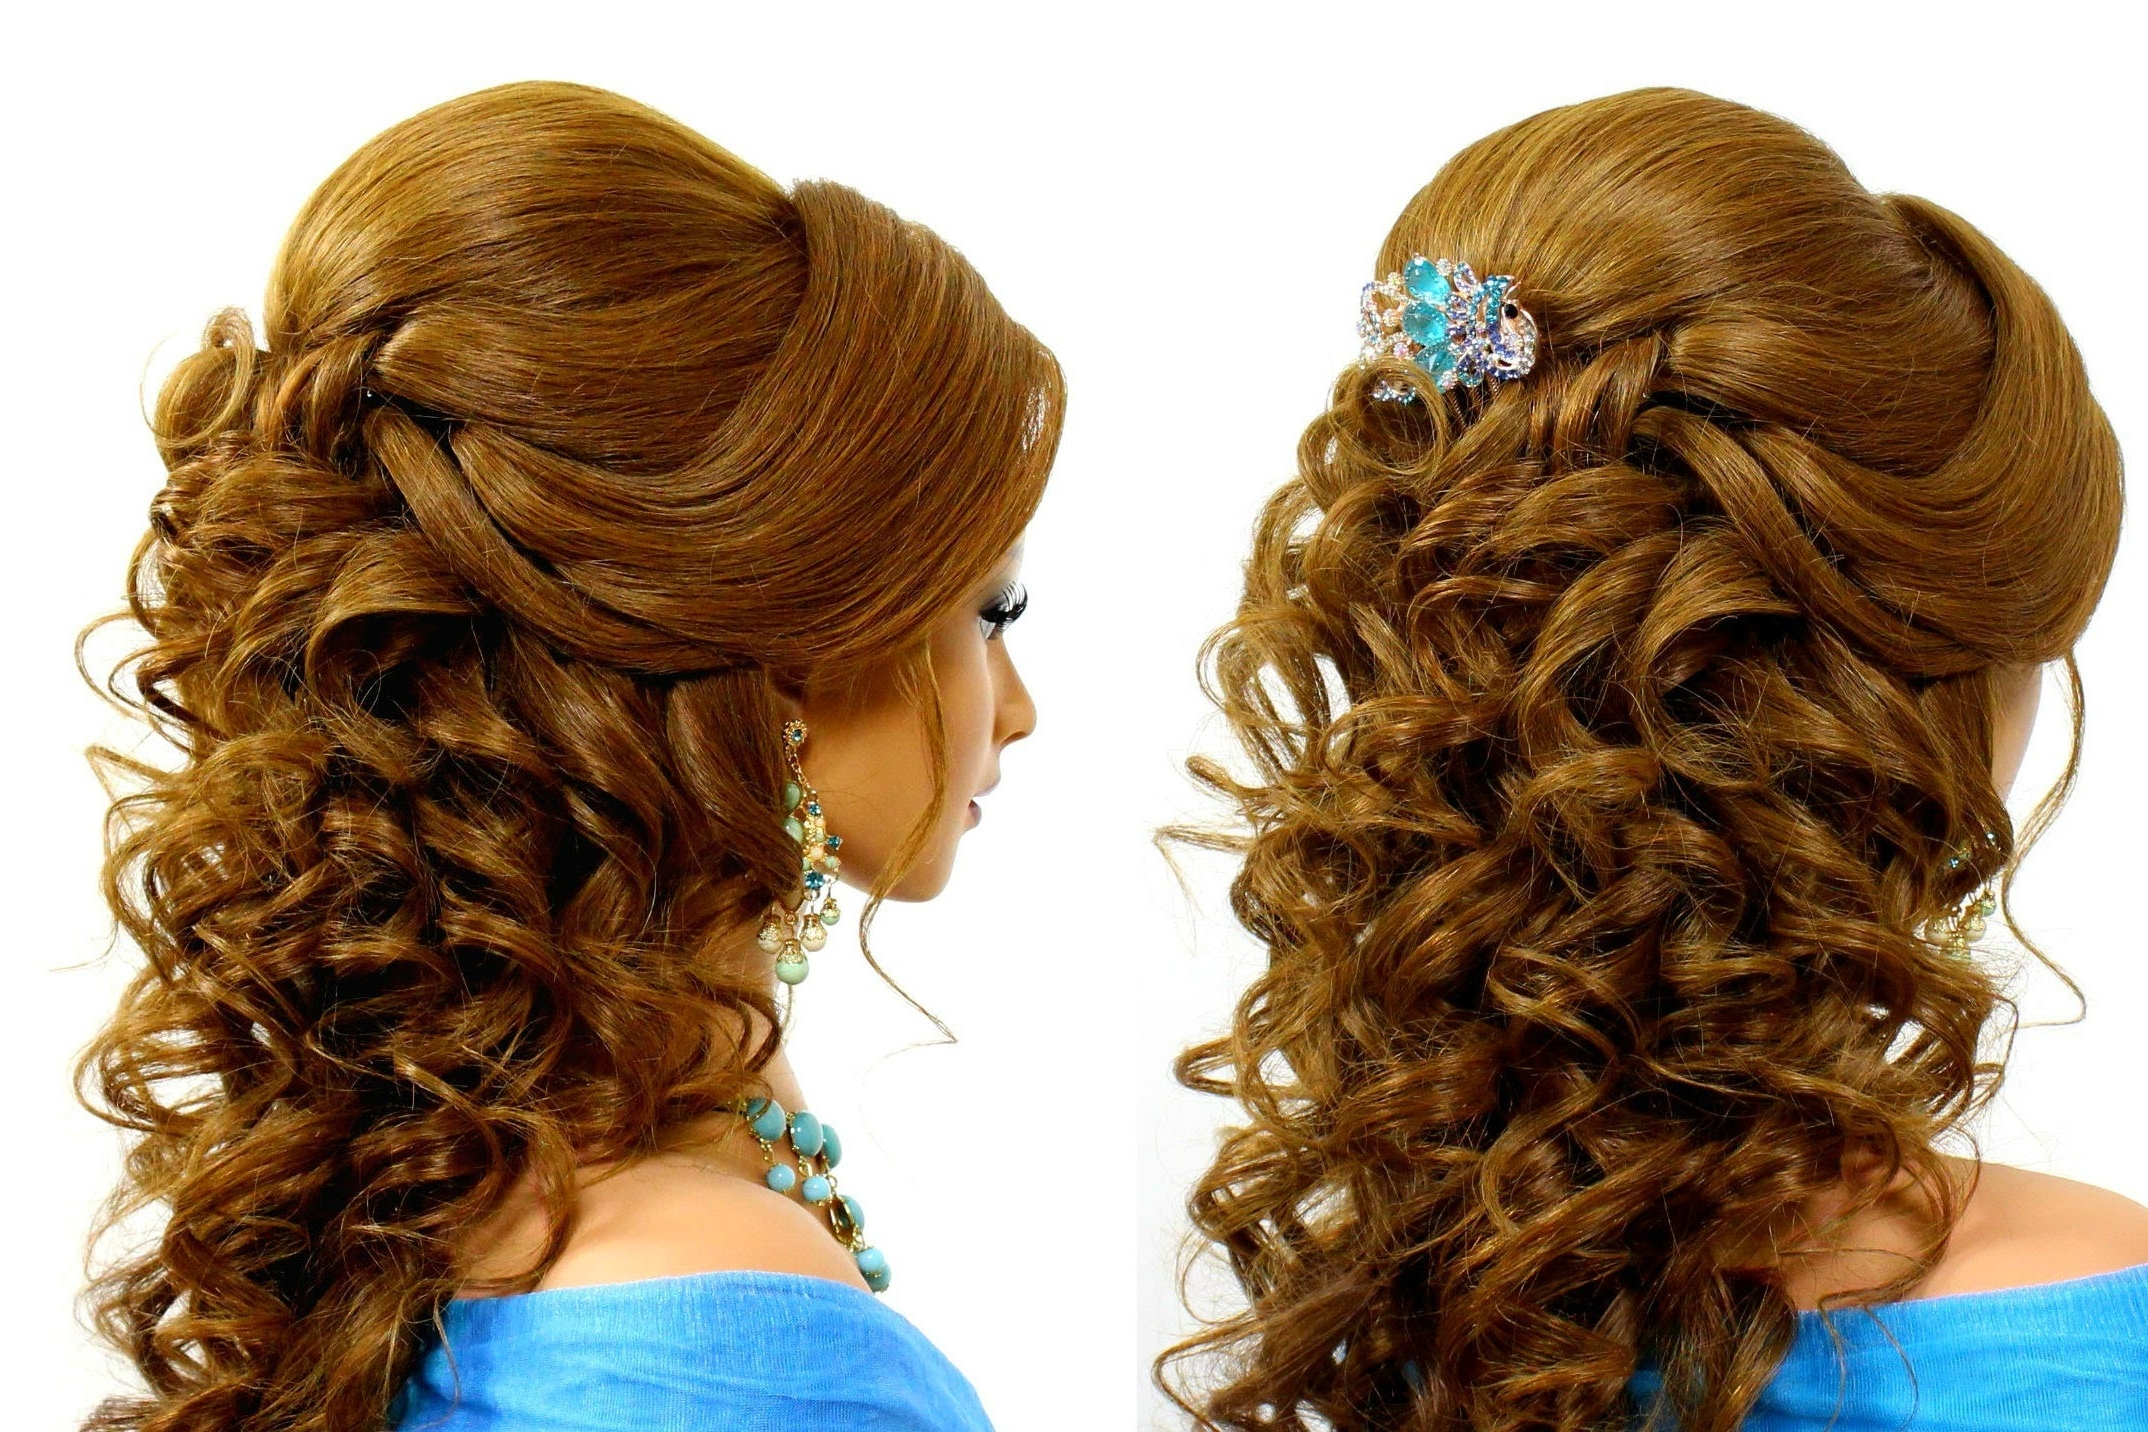 Preferred Wedding Hairstyles For Long Romantic Hair For Romantic Wedding Hairstyle For Long Hair Tutorial – Youtube (View 10 of 15)